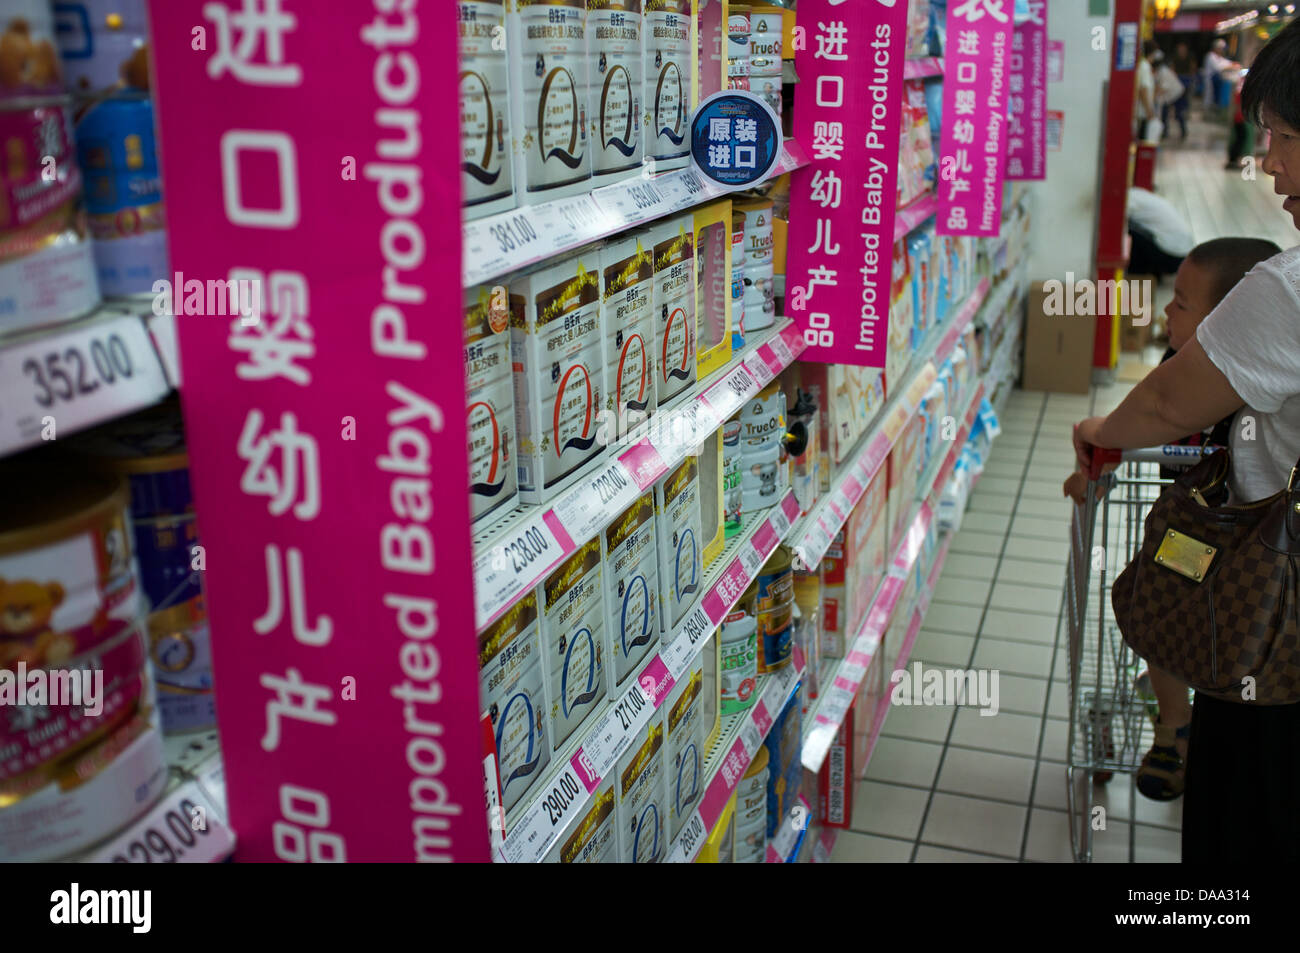 An elderly woman and a baby look at imported infant formula baby milk powder in a supermarket in Beijing, China. - Stock Image